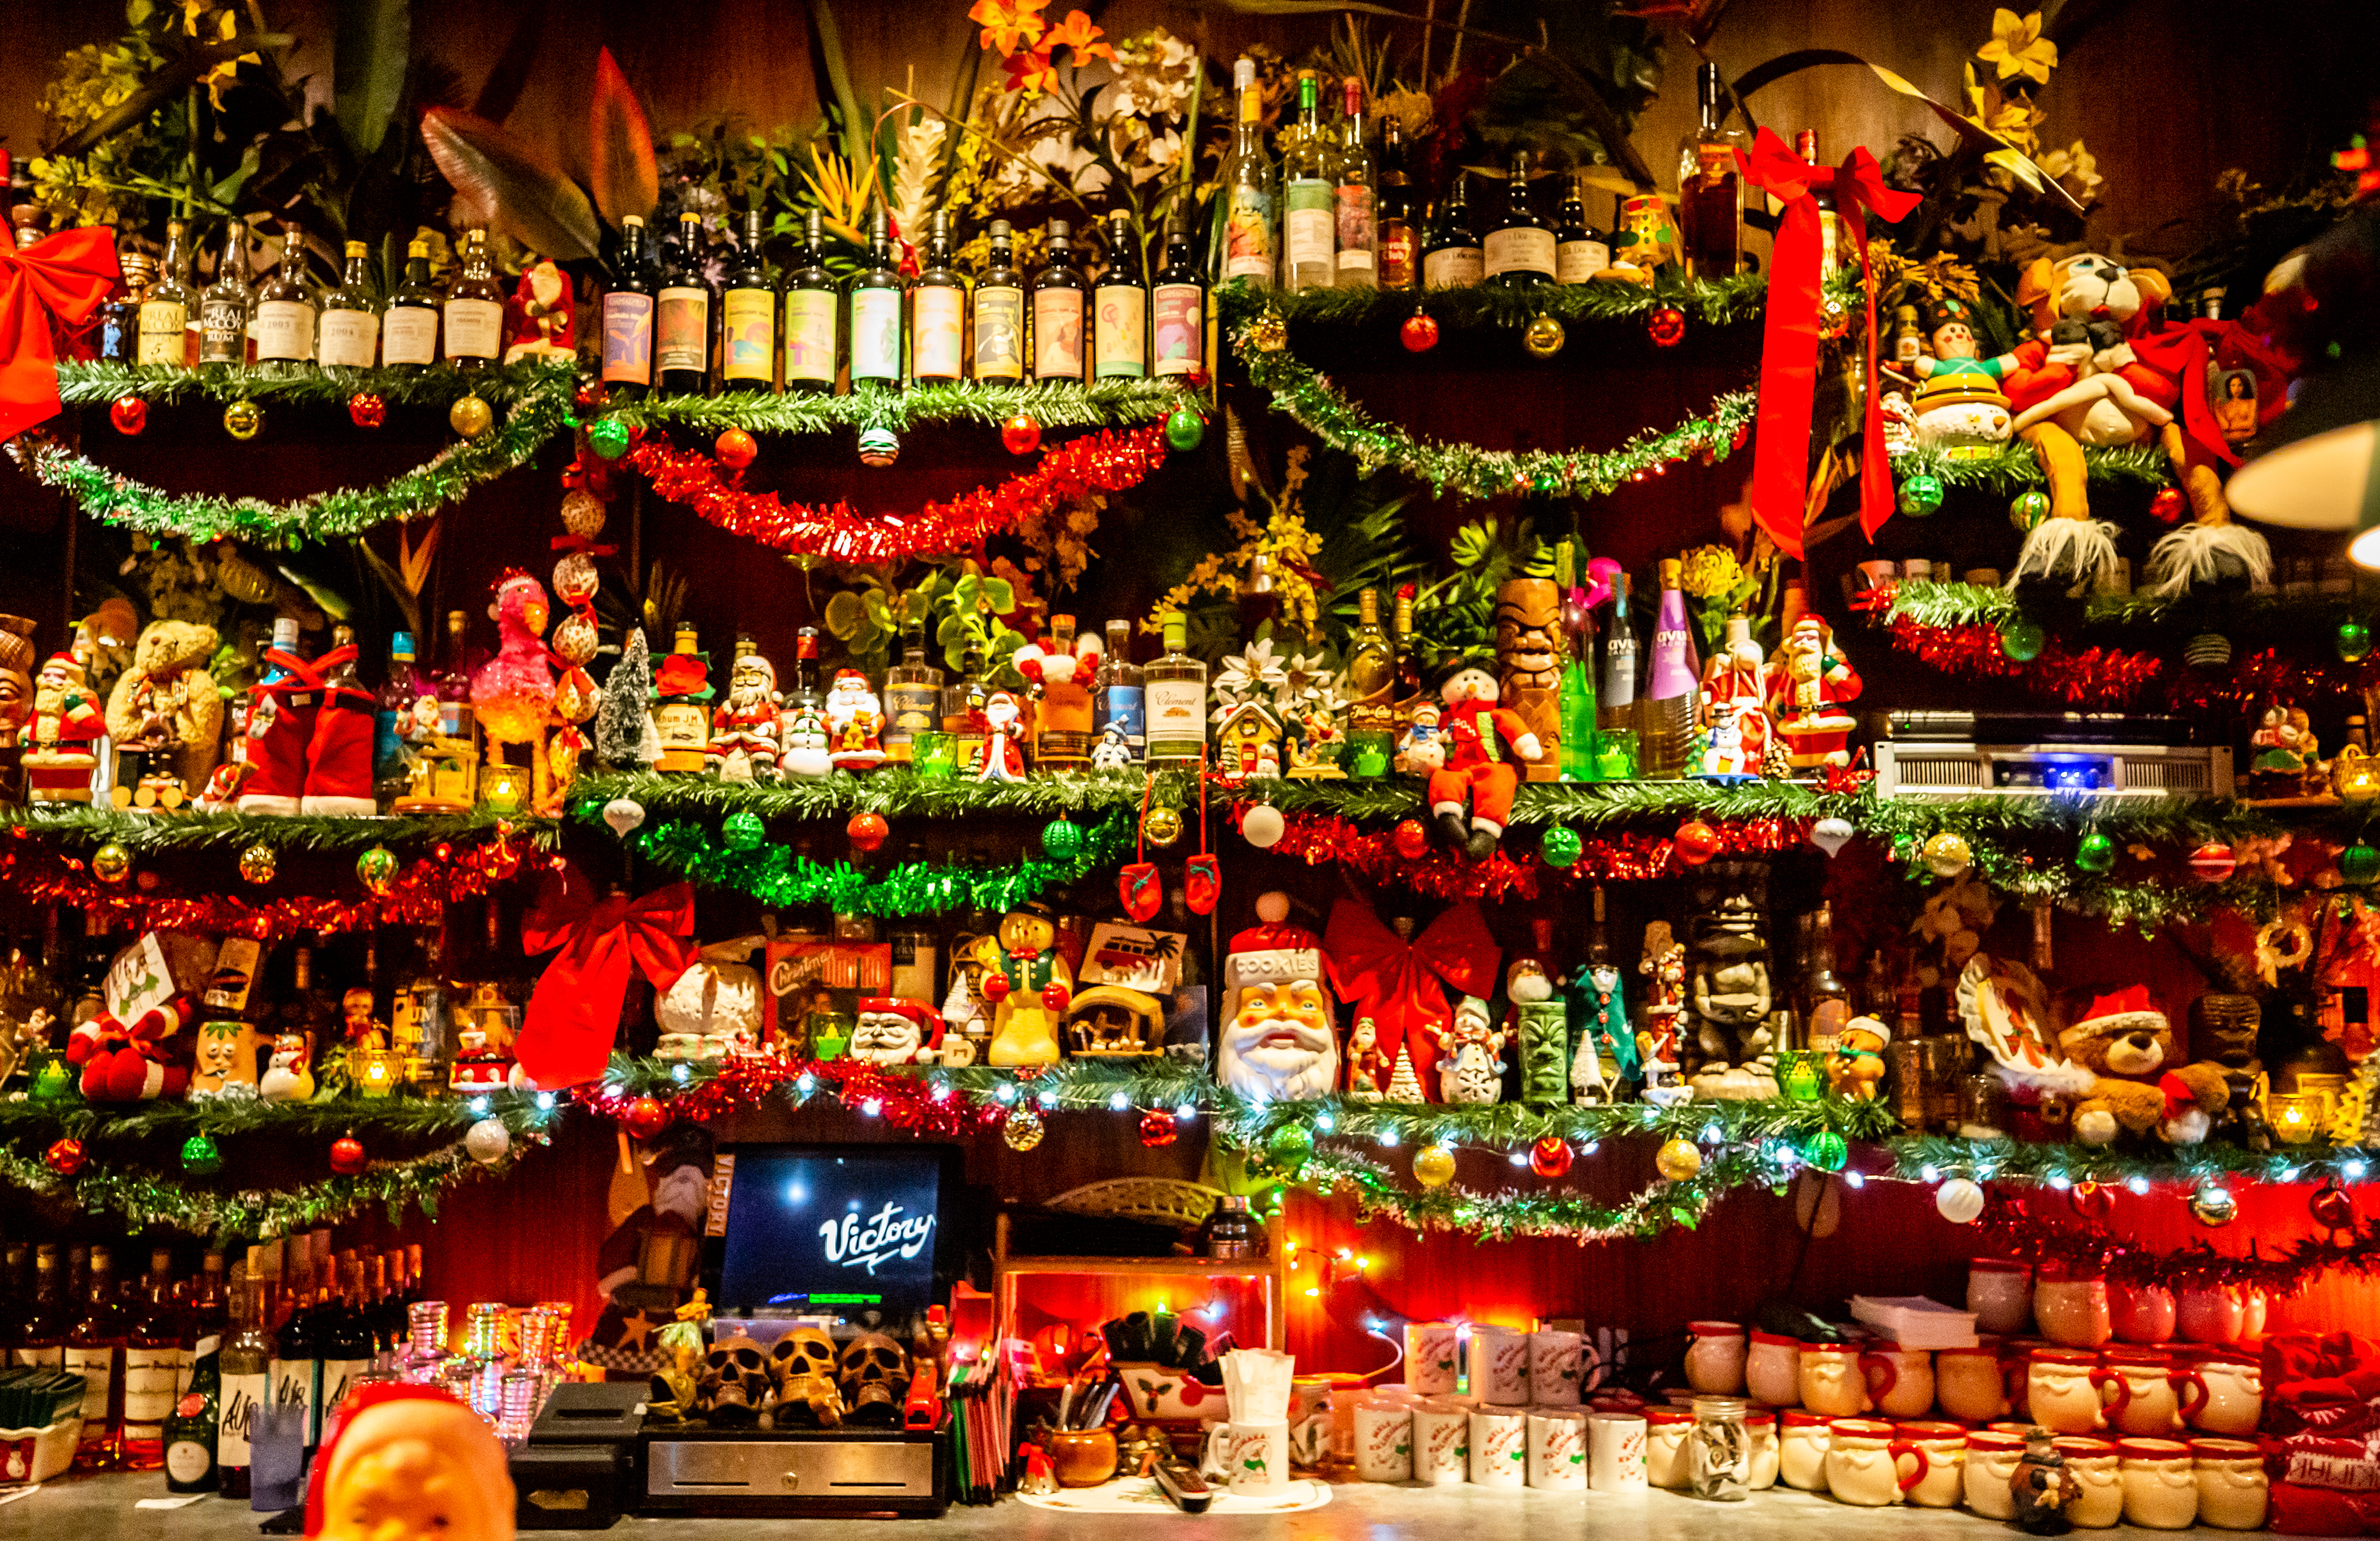 Rum-Soaked Holiday Cocktails and Christmas Kitsch Return to S.O.S Tiki Bar